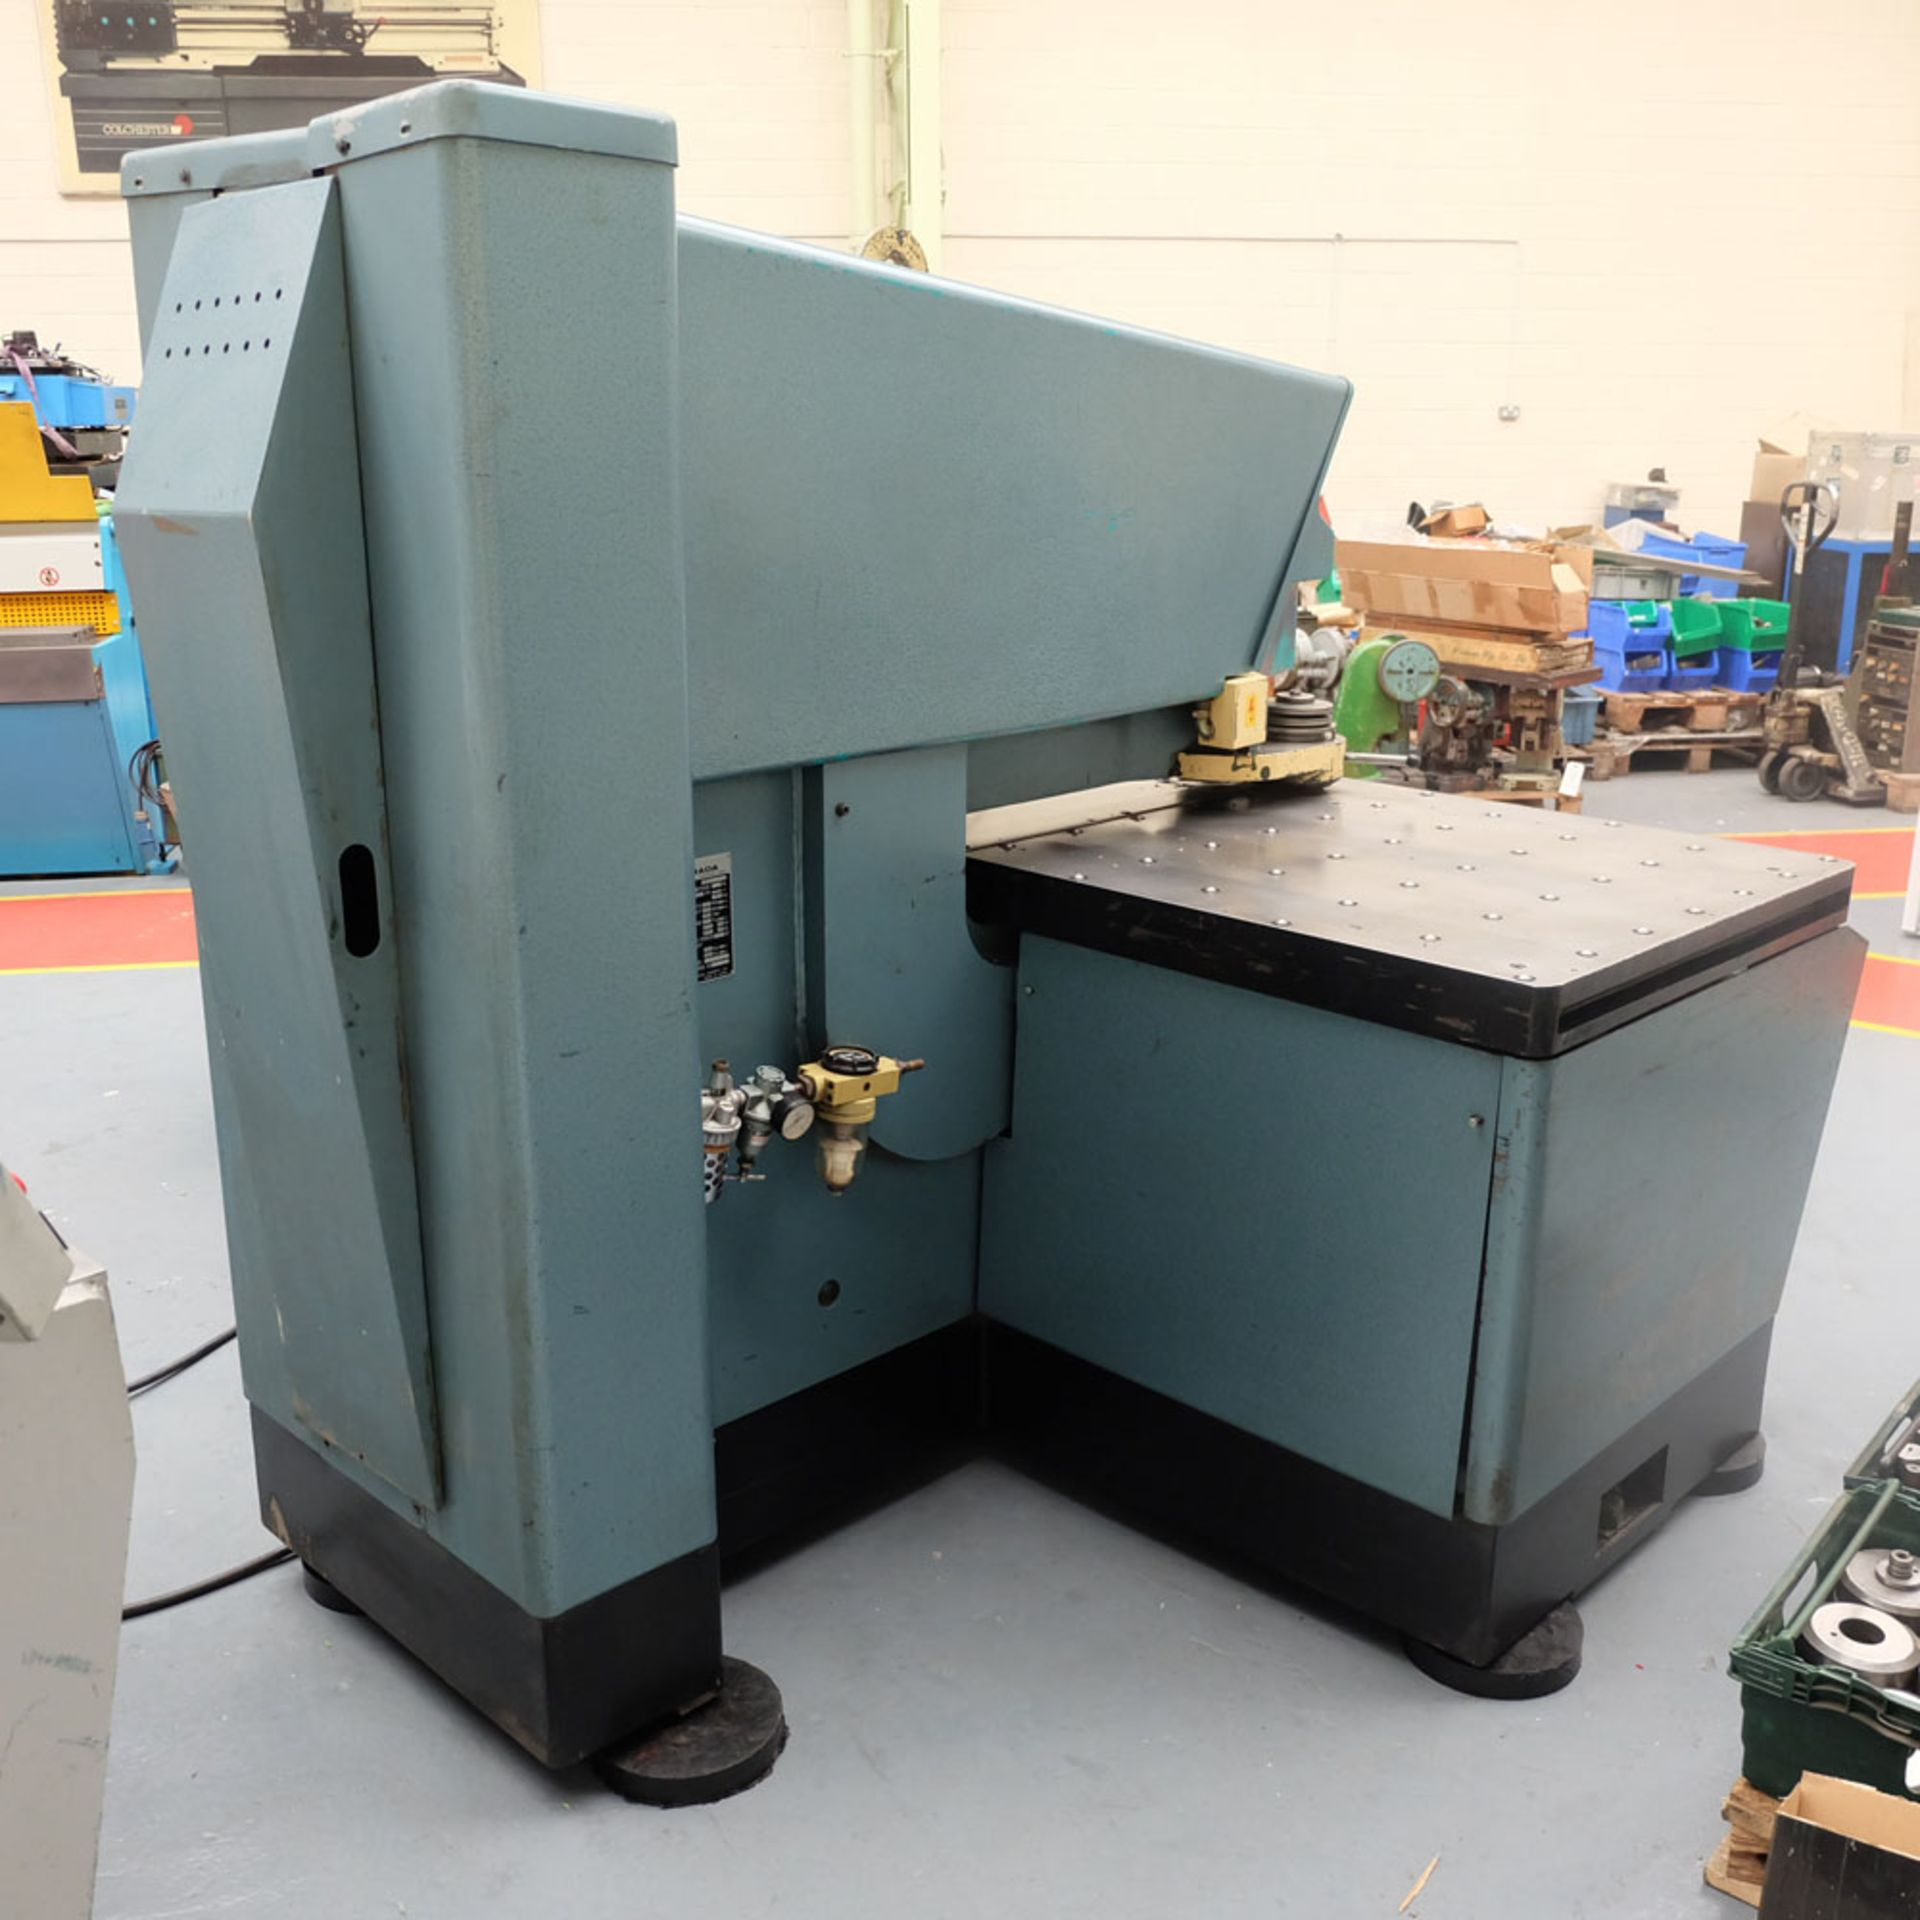 Amada D-750 Duplicator Punching Machine with Tooling and Digital Readout. - Image 6 of 8